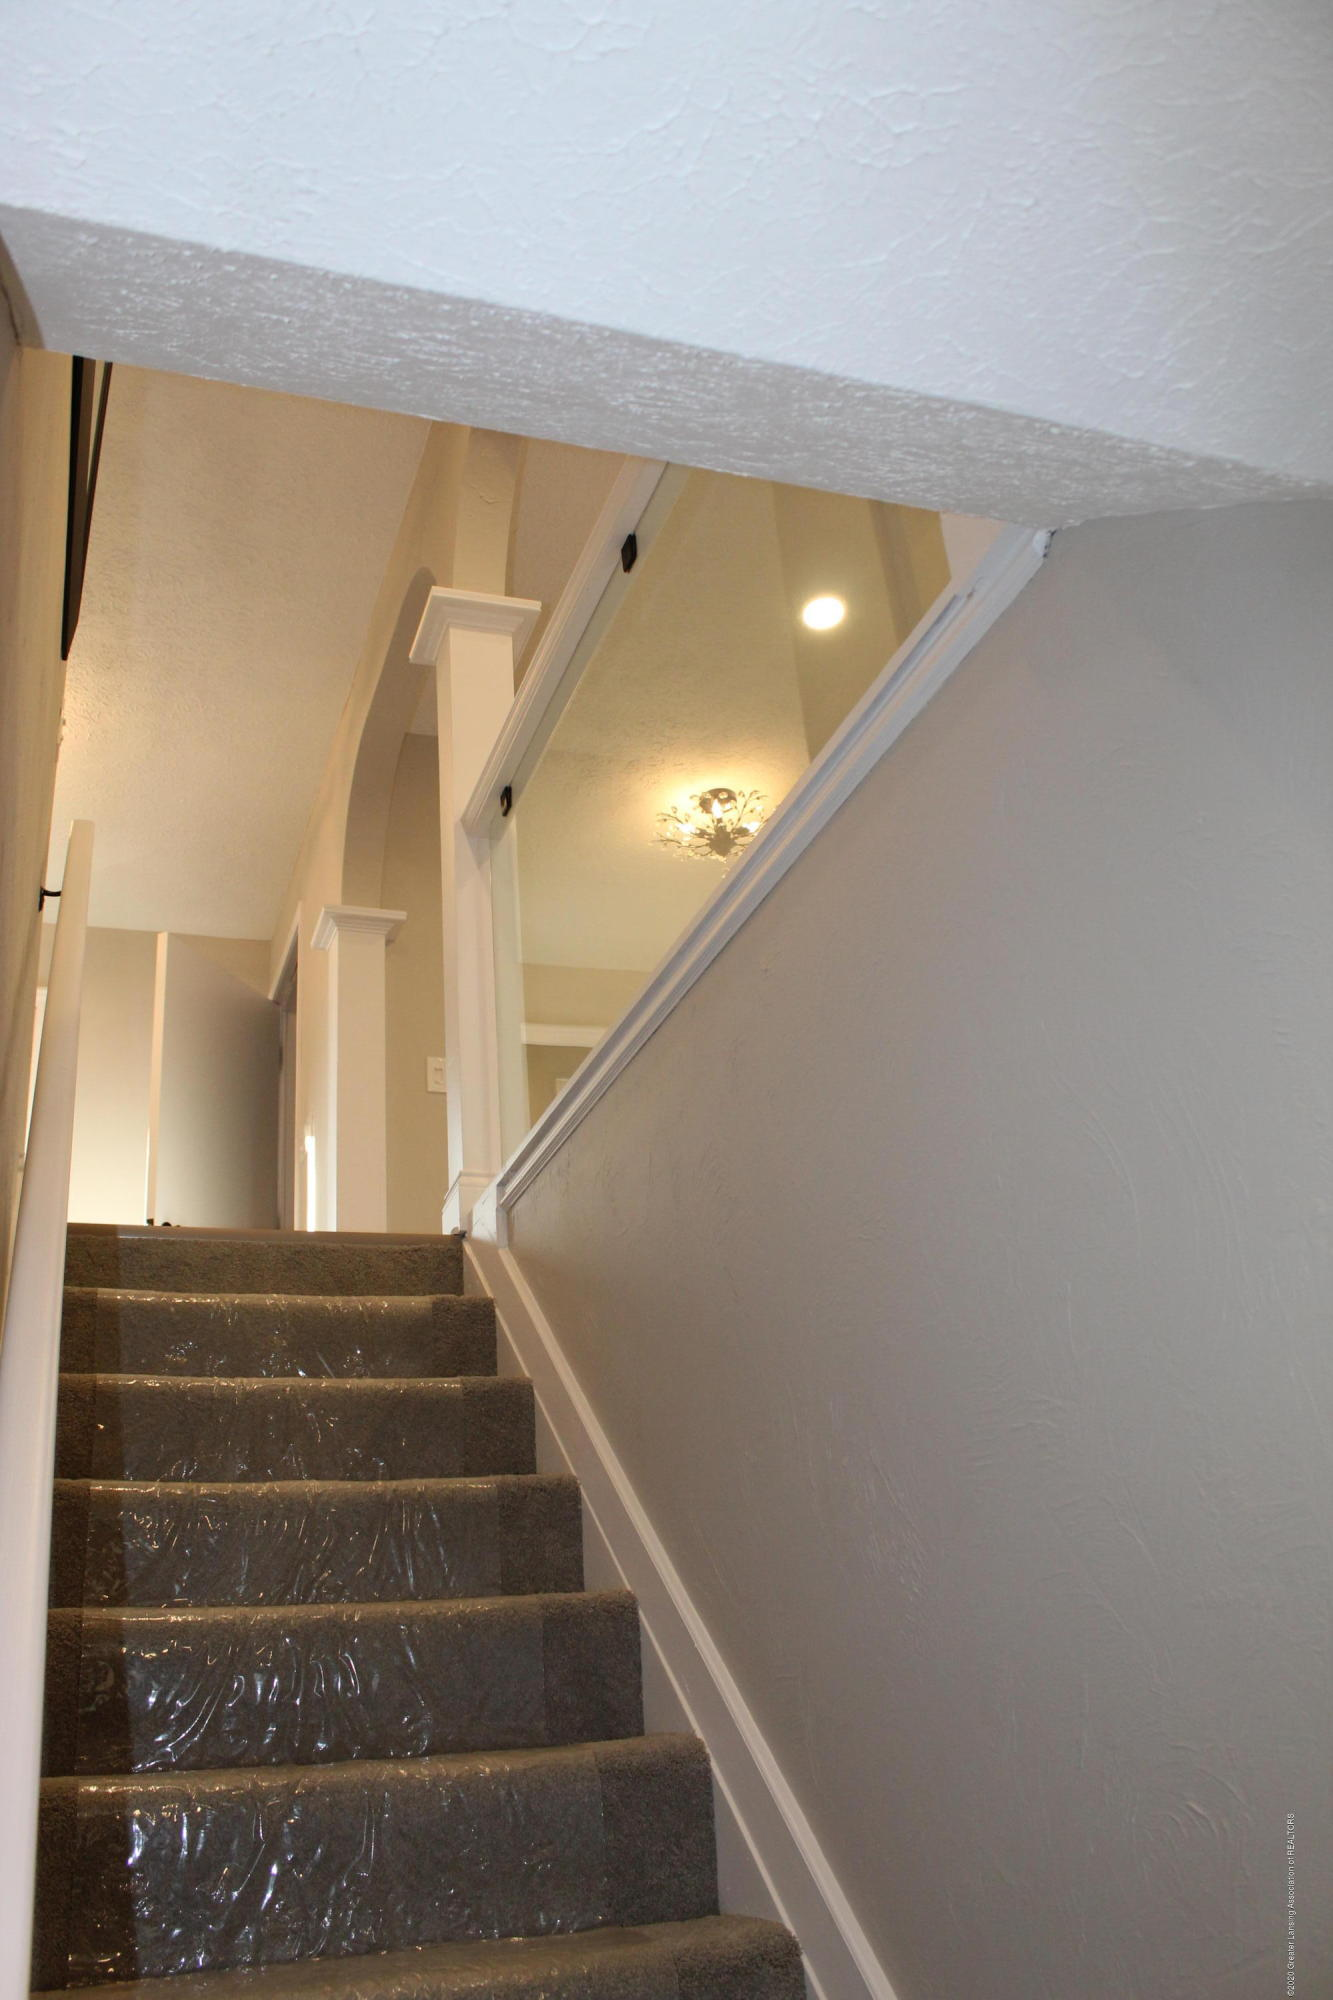 984 Whittier Dr - STAIRWAY LOOKING UP - 68